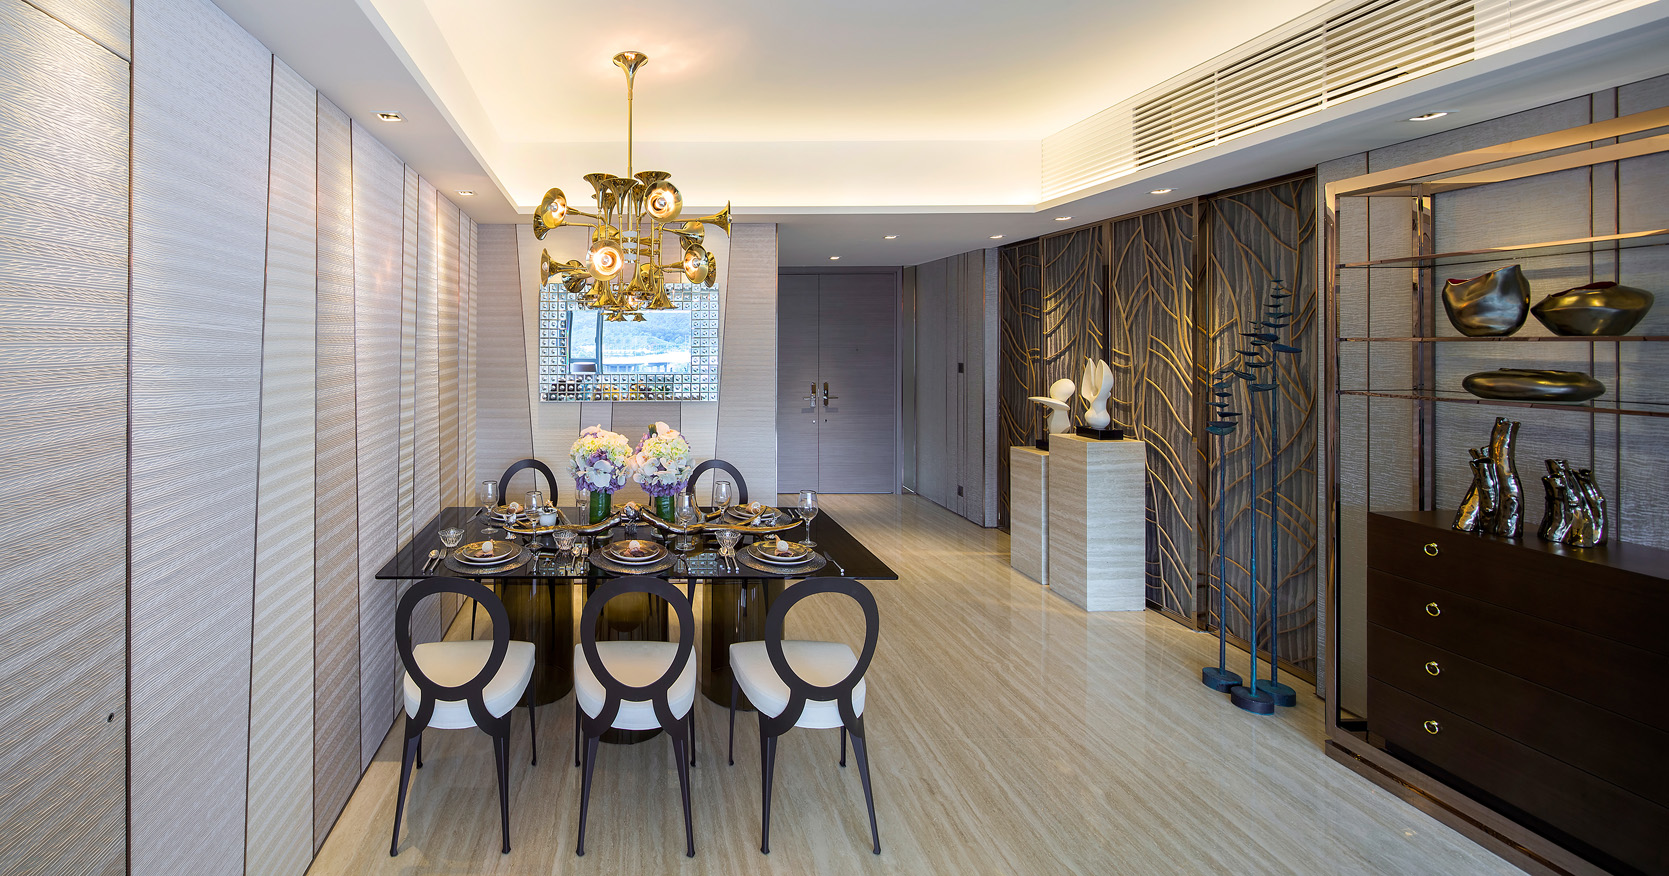 Dining room lighting ideas for a luxury interior lighting collection Meet the Newest Family Of LUXXU's Lighting Collection Dining room lighting ideas Delightfull Botti lighting collection Meet the Newest Family Of LUXXU's Lighting Collection Dining room lighting ideas Delightfull Botti